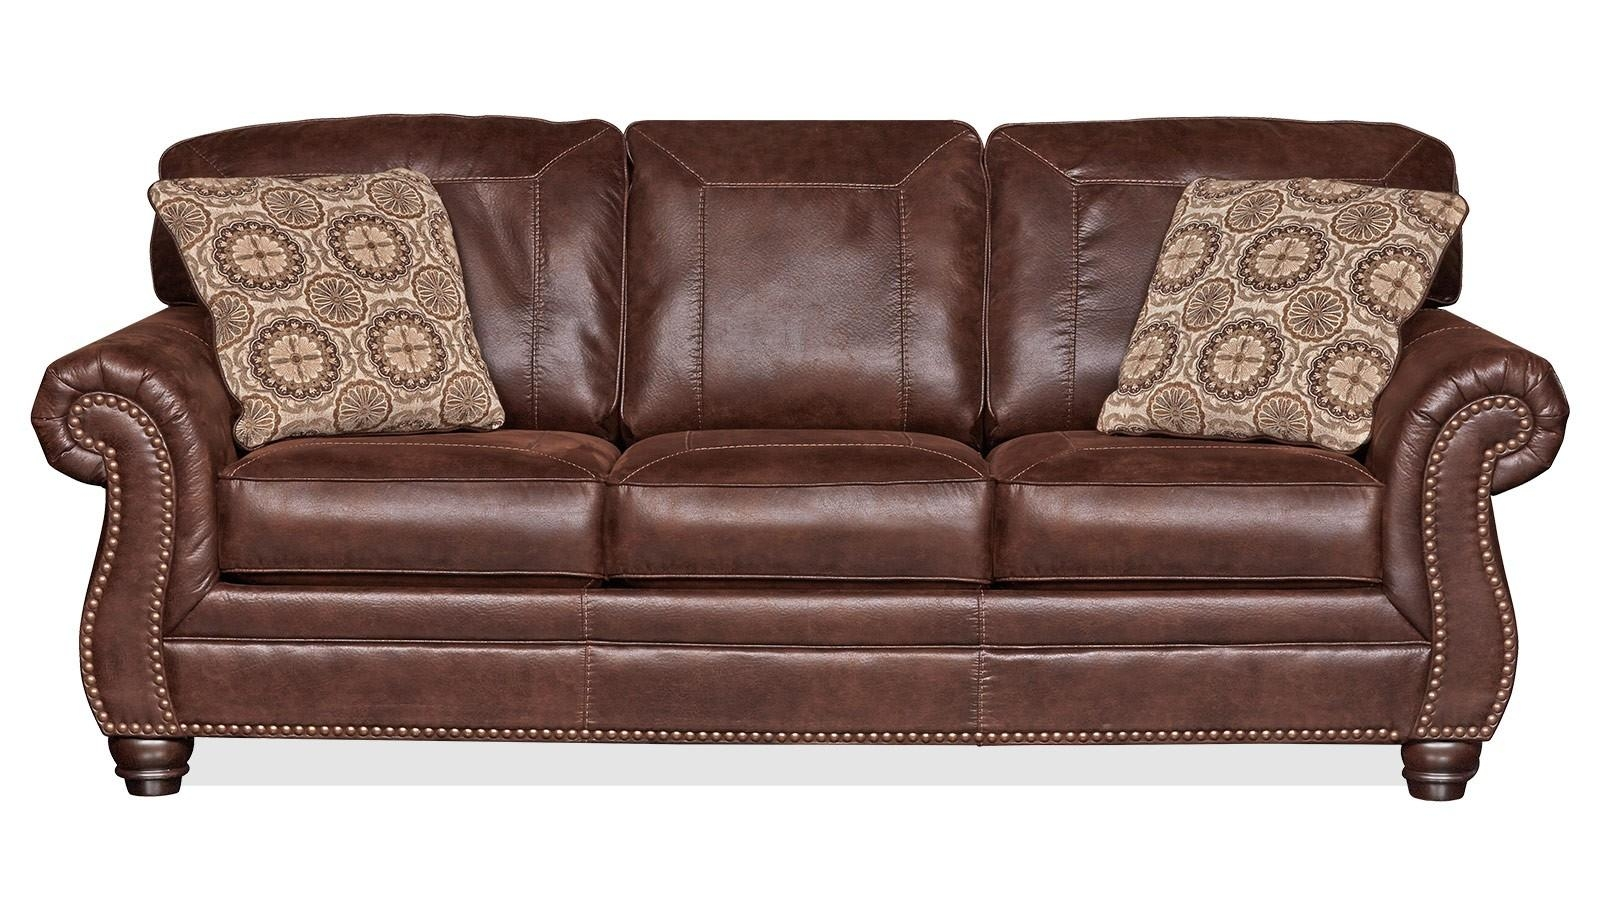 Living Room Sofas | Gallery Furniture Pertaining To Brown Sofa Chairs (View 14 of 20)